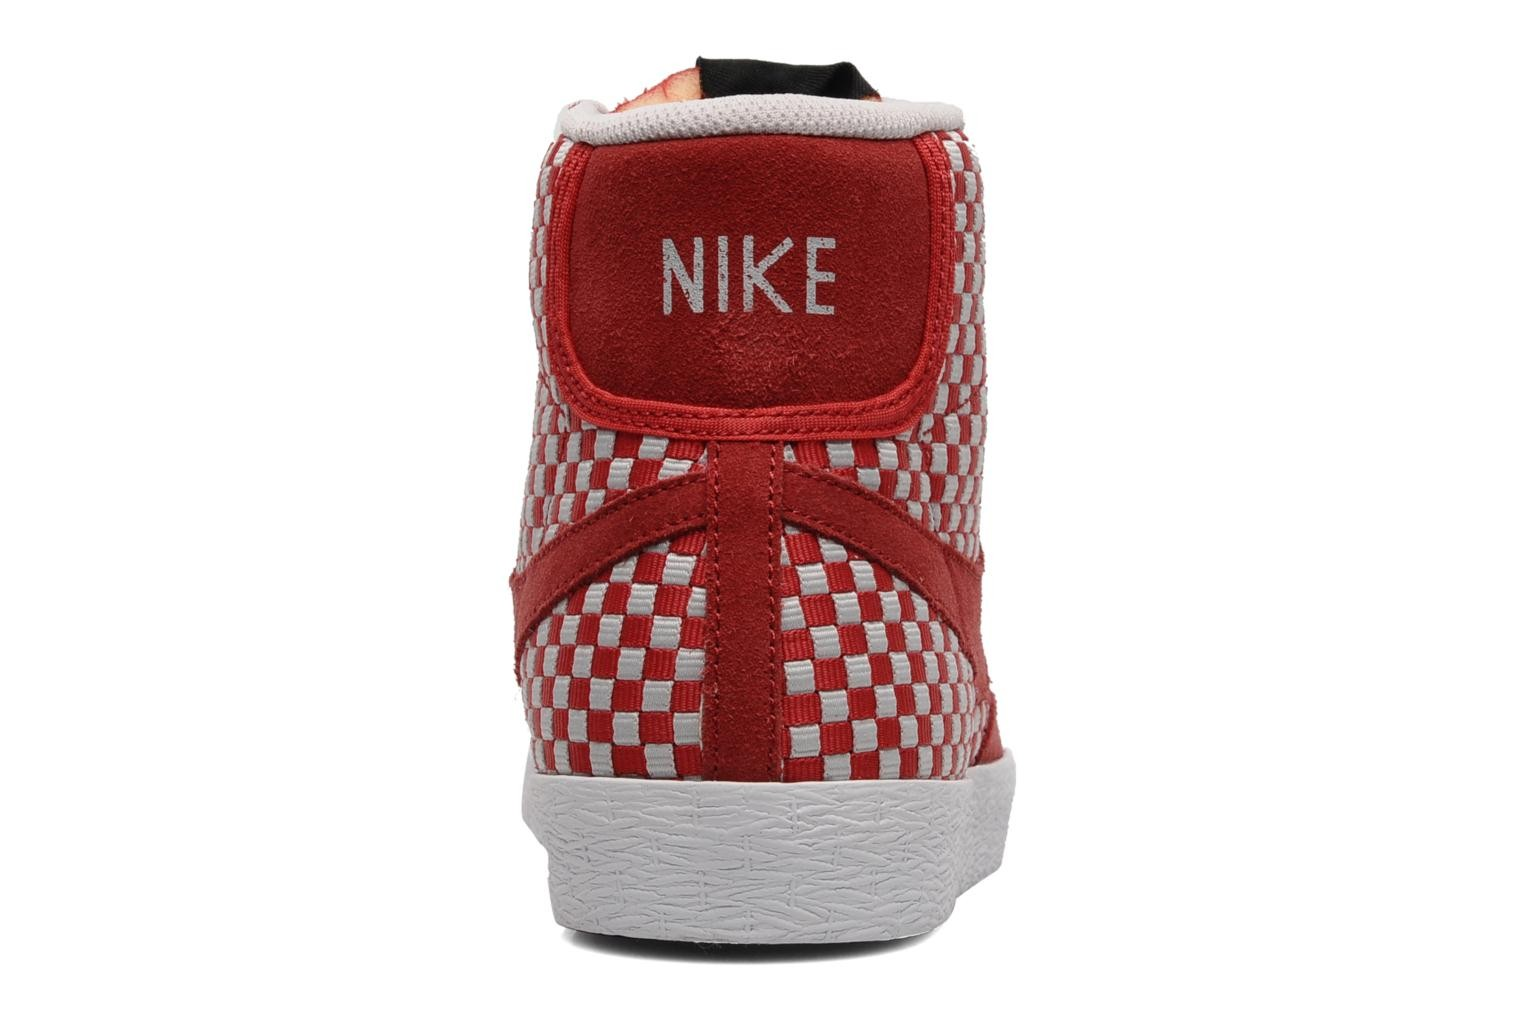 Nike Blazer Mid Woven Hyper Red Neutral Grey Mens High Top Sneakers